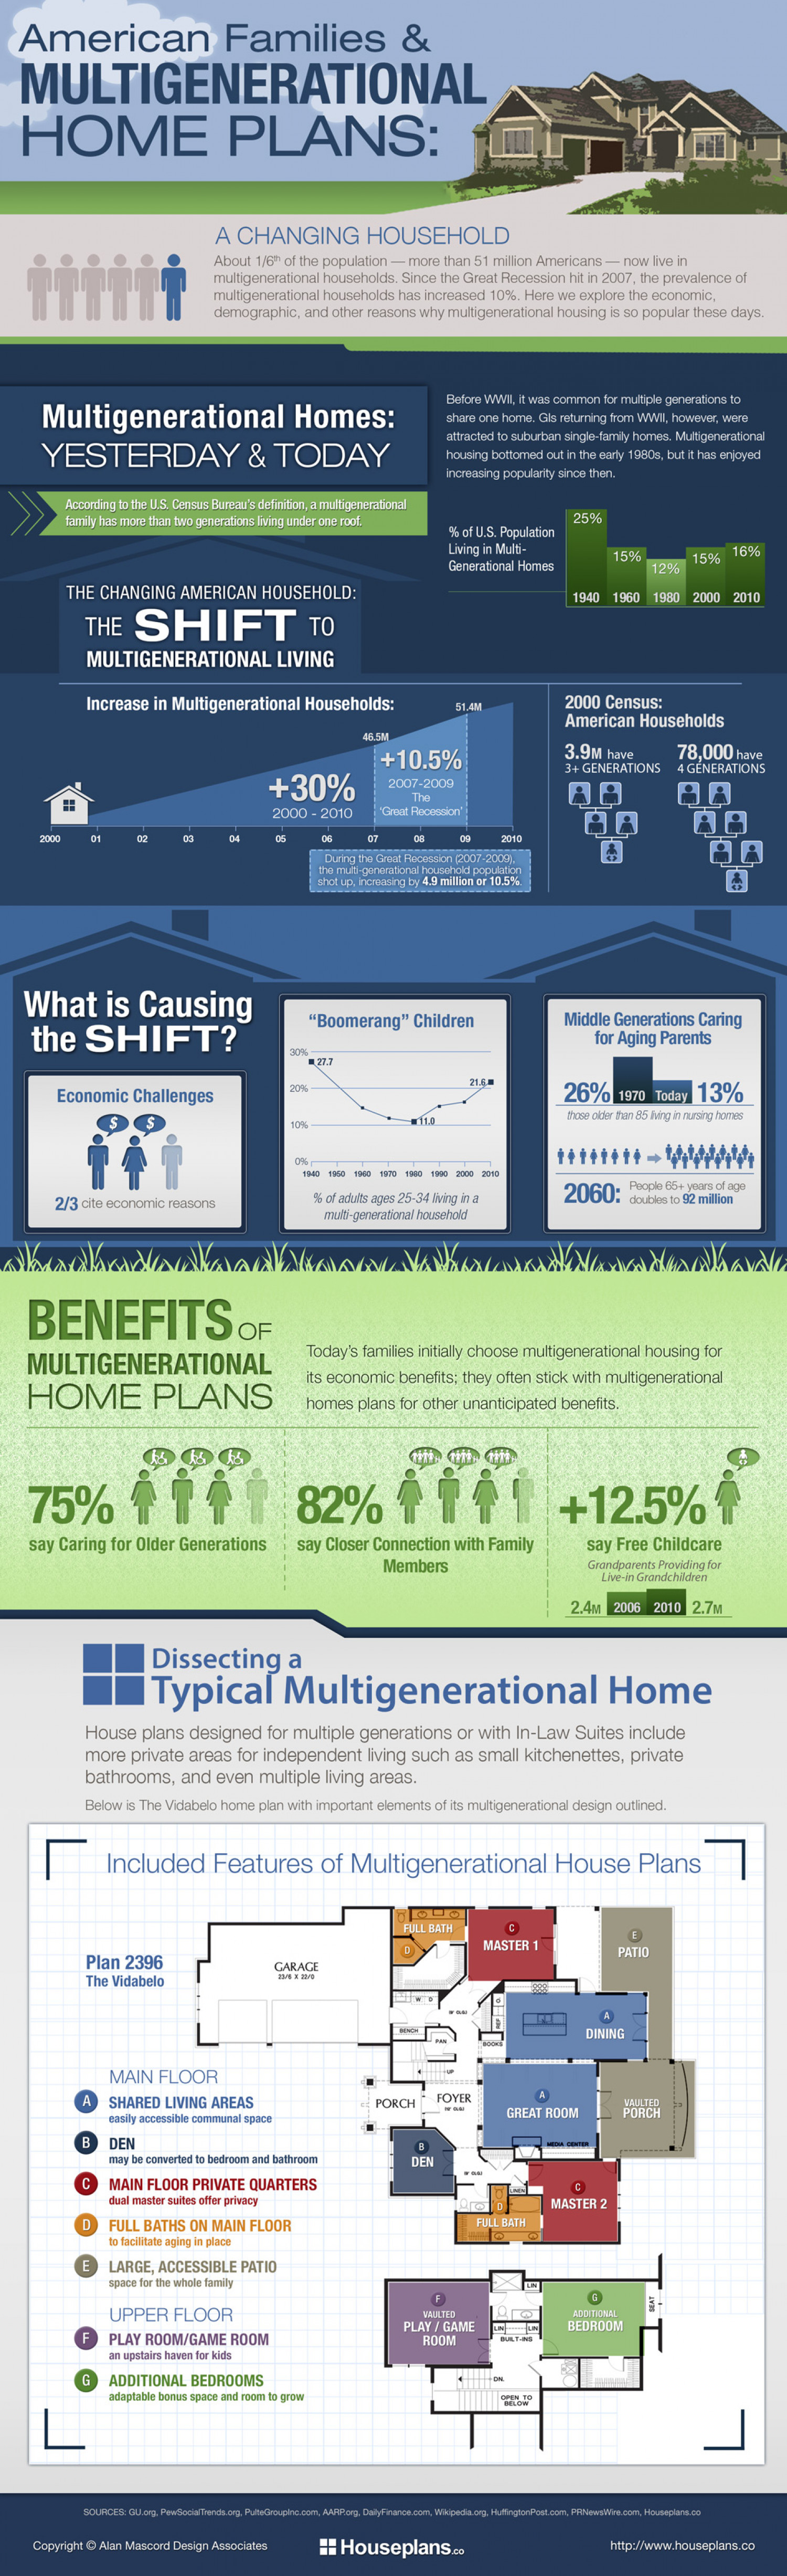 American Families & Multigenerational Home Plans: A Changing Household Infographic